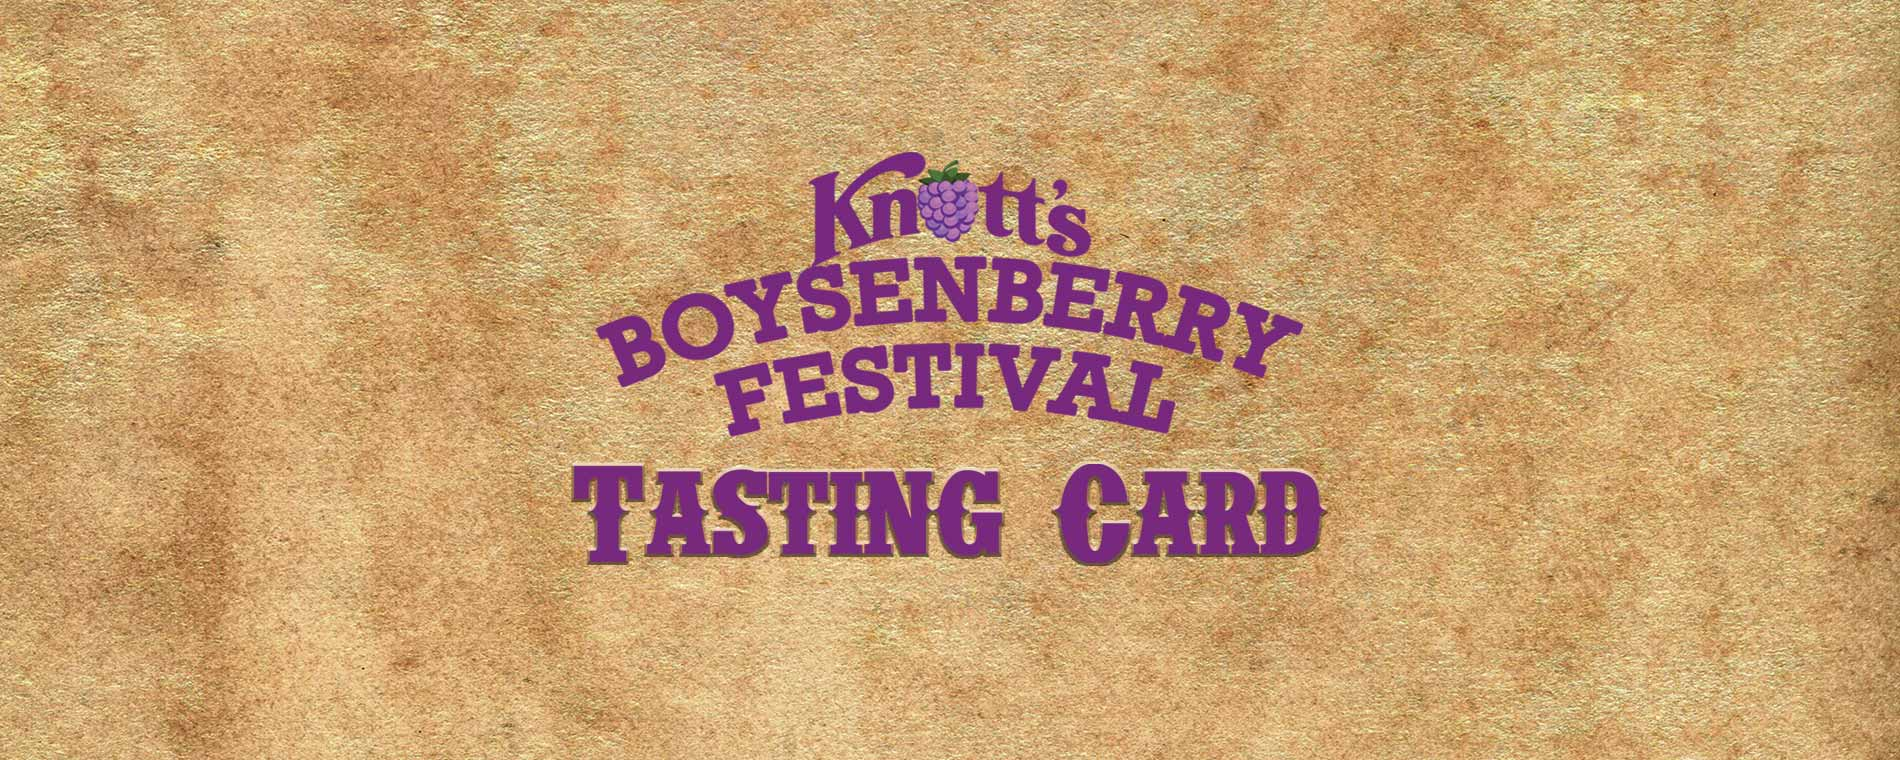 Food Tasting Cards at the Boysenberry Festival